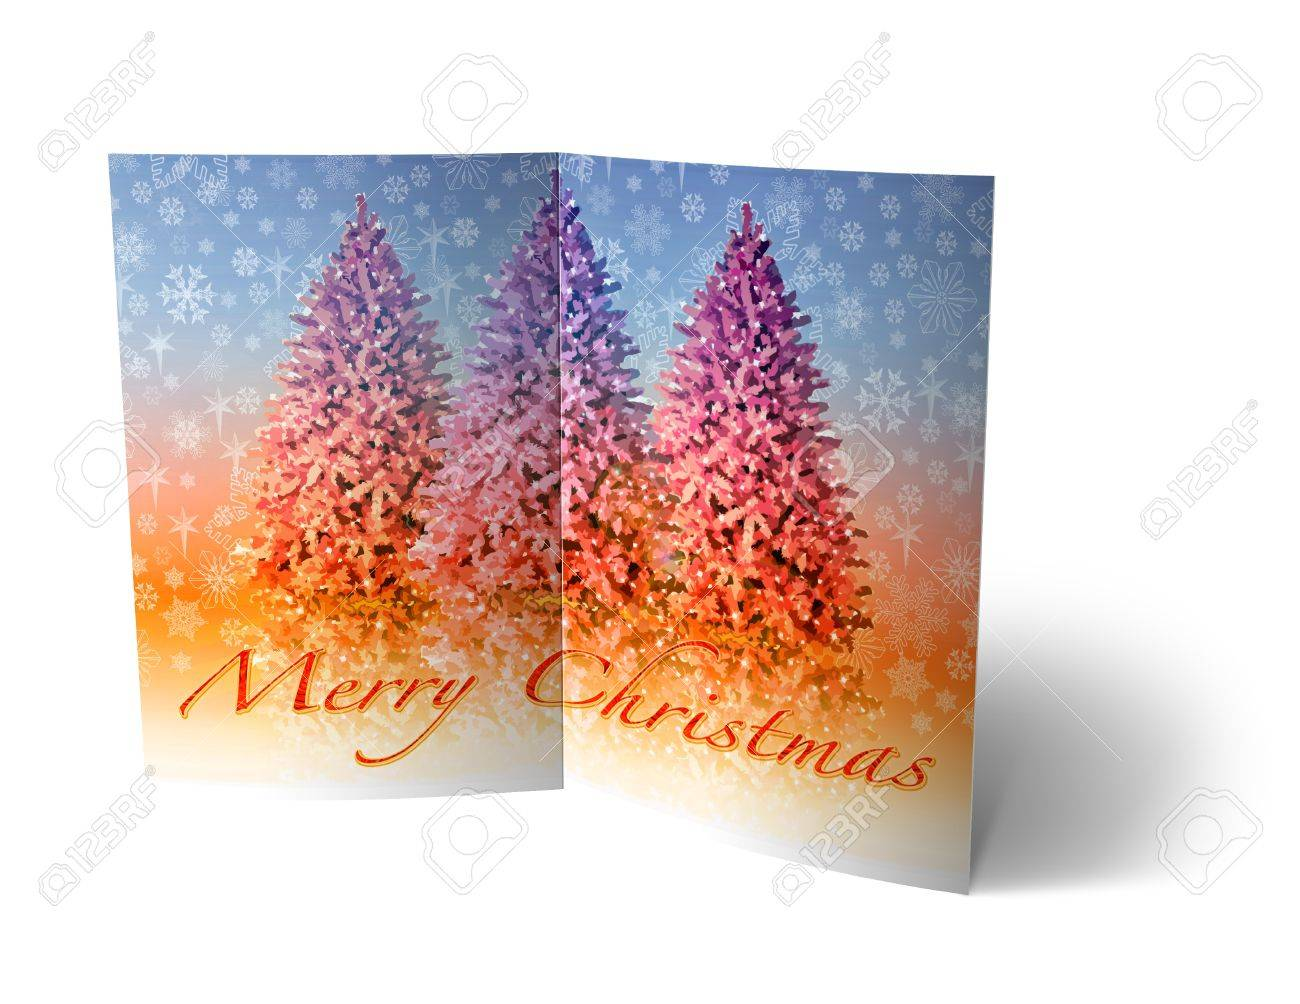 isolated 3d Christmas Balls brochure, Card Illustration Stock Photo - 16023408